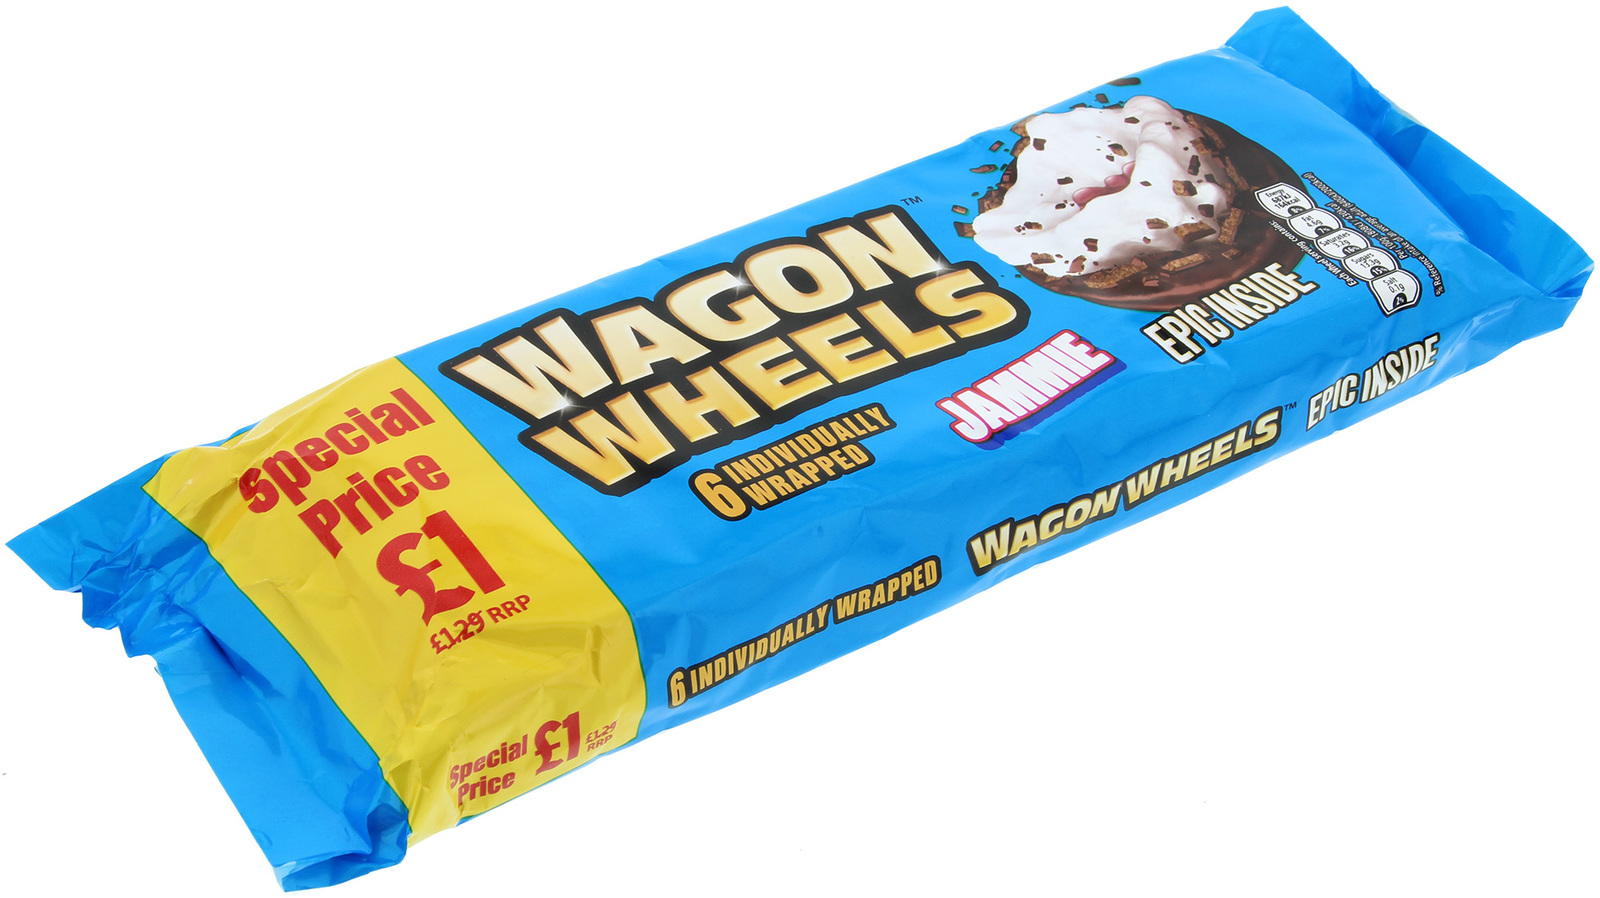 Wagon Wheels Jammie Biscuits 6pk image